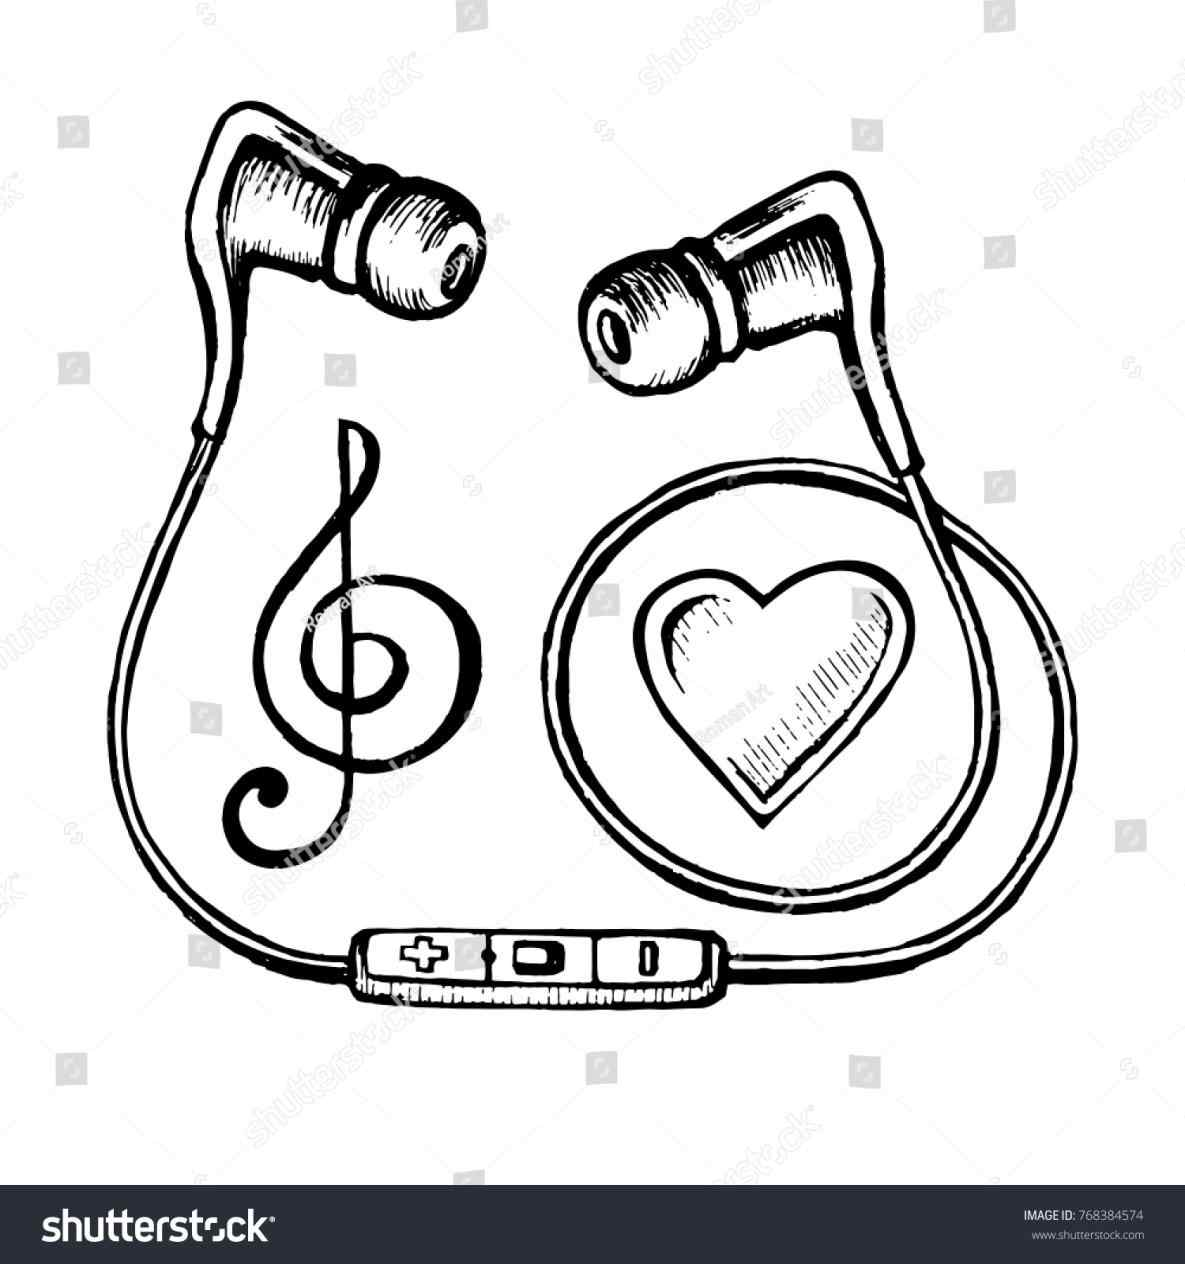 1185x1264 Vector Headphones Microphone And Music Notes Drawing Doodle Sketch